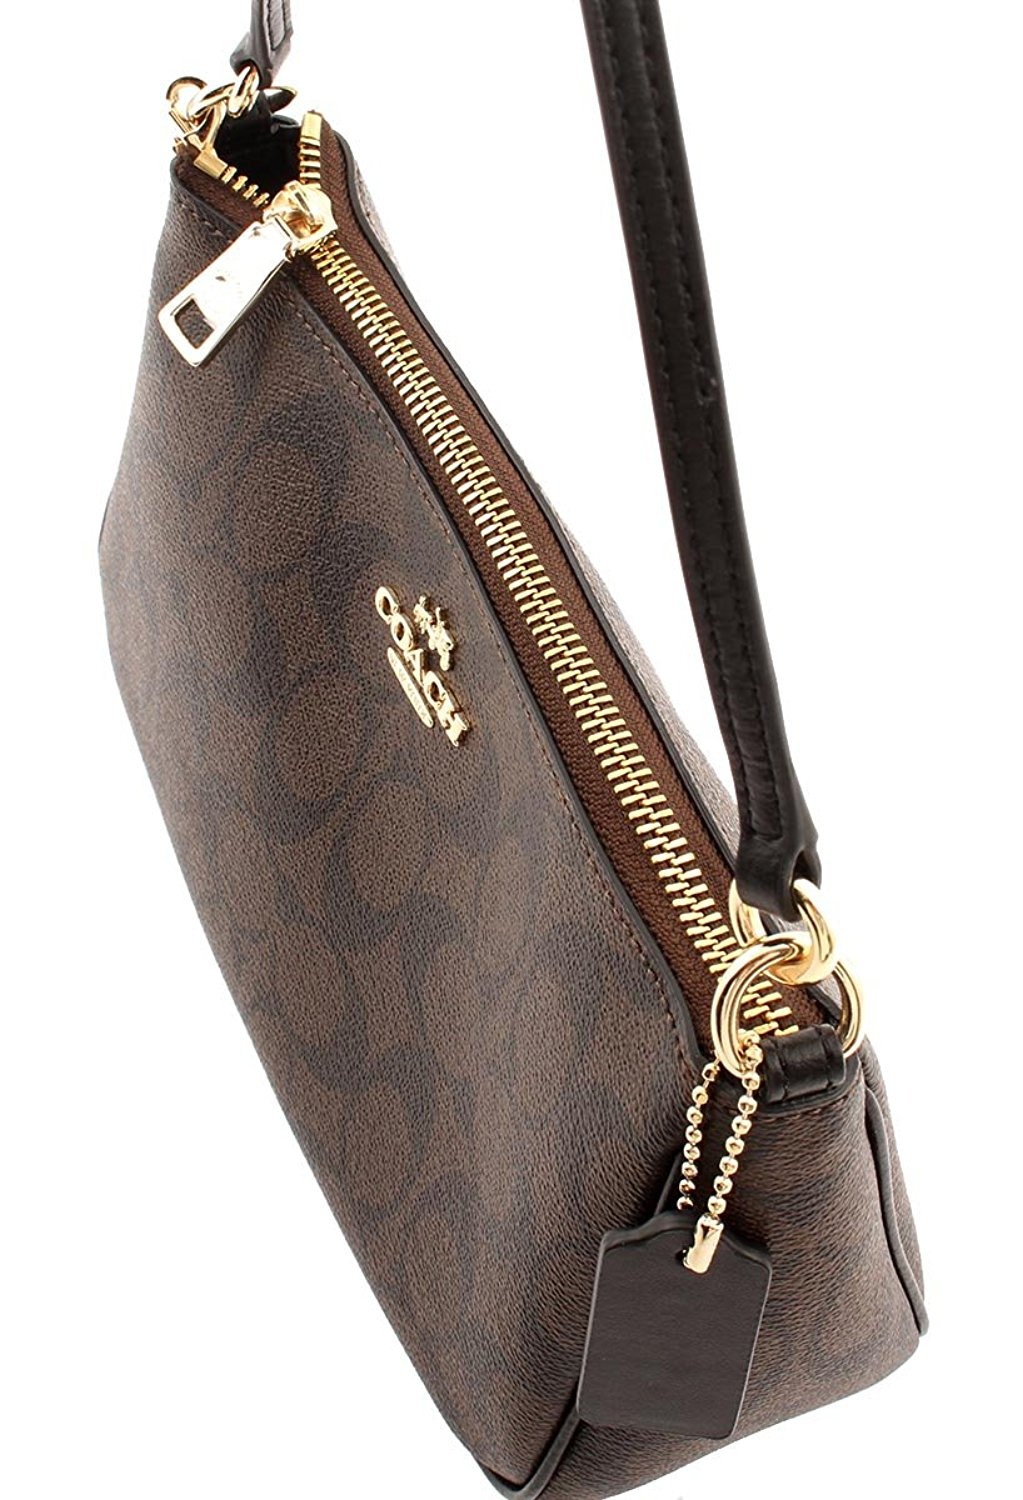 MESSICO TOP HANDLE POUCH IN SIGNATURE